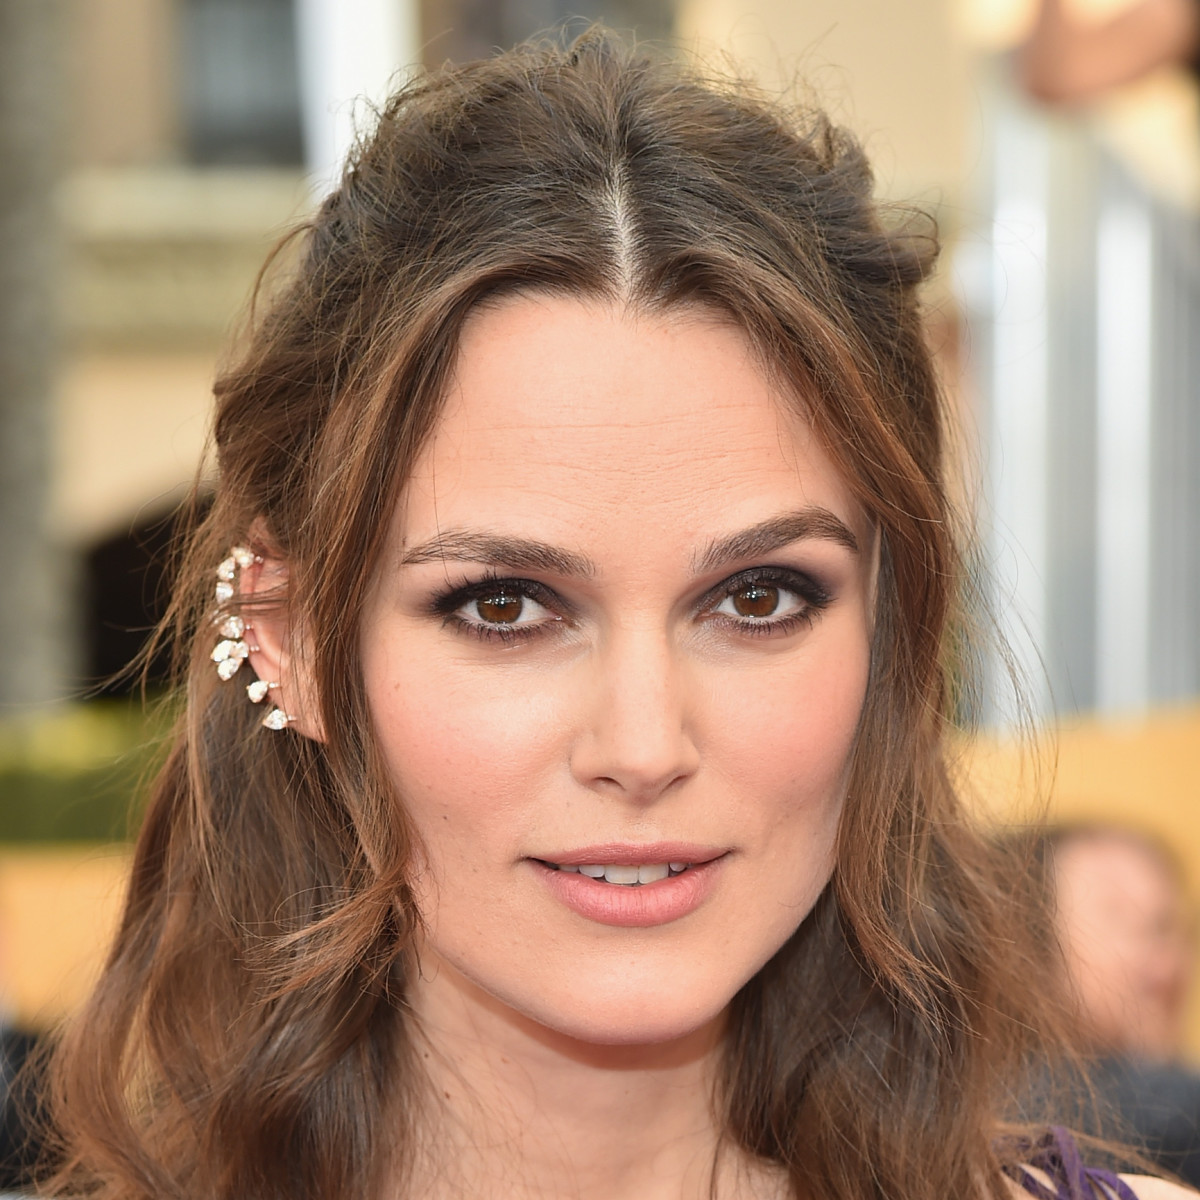 picture Keira Knightley (born 1985)